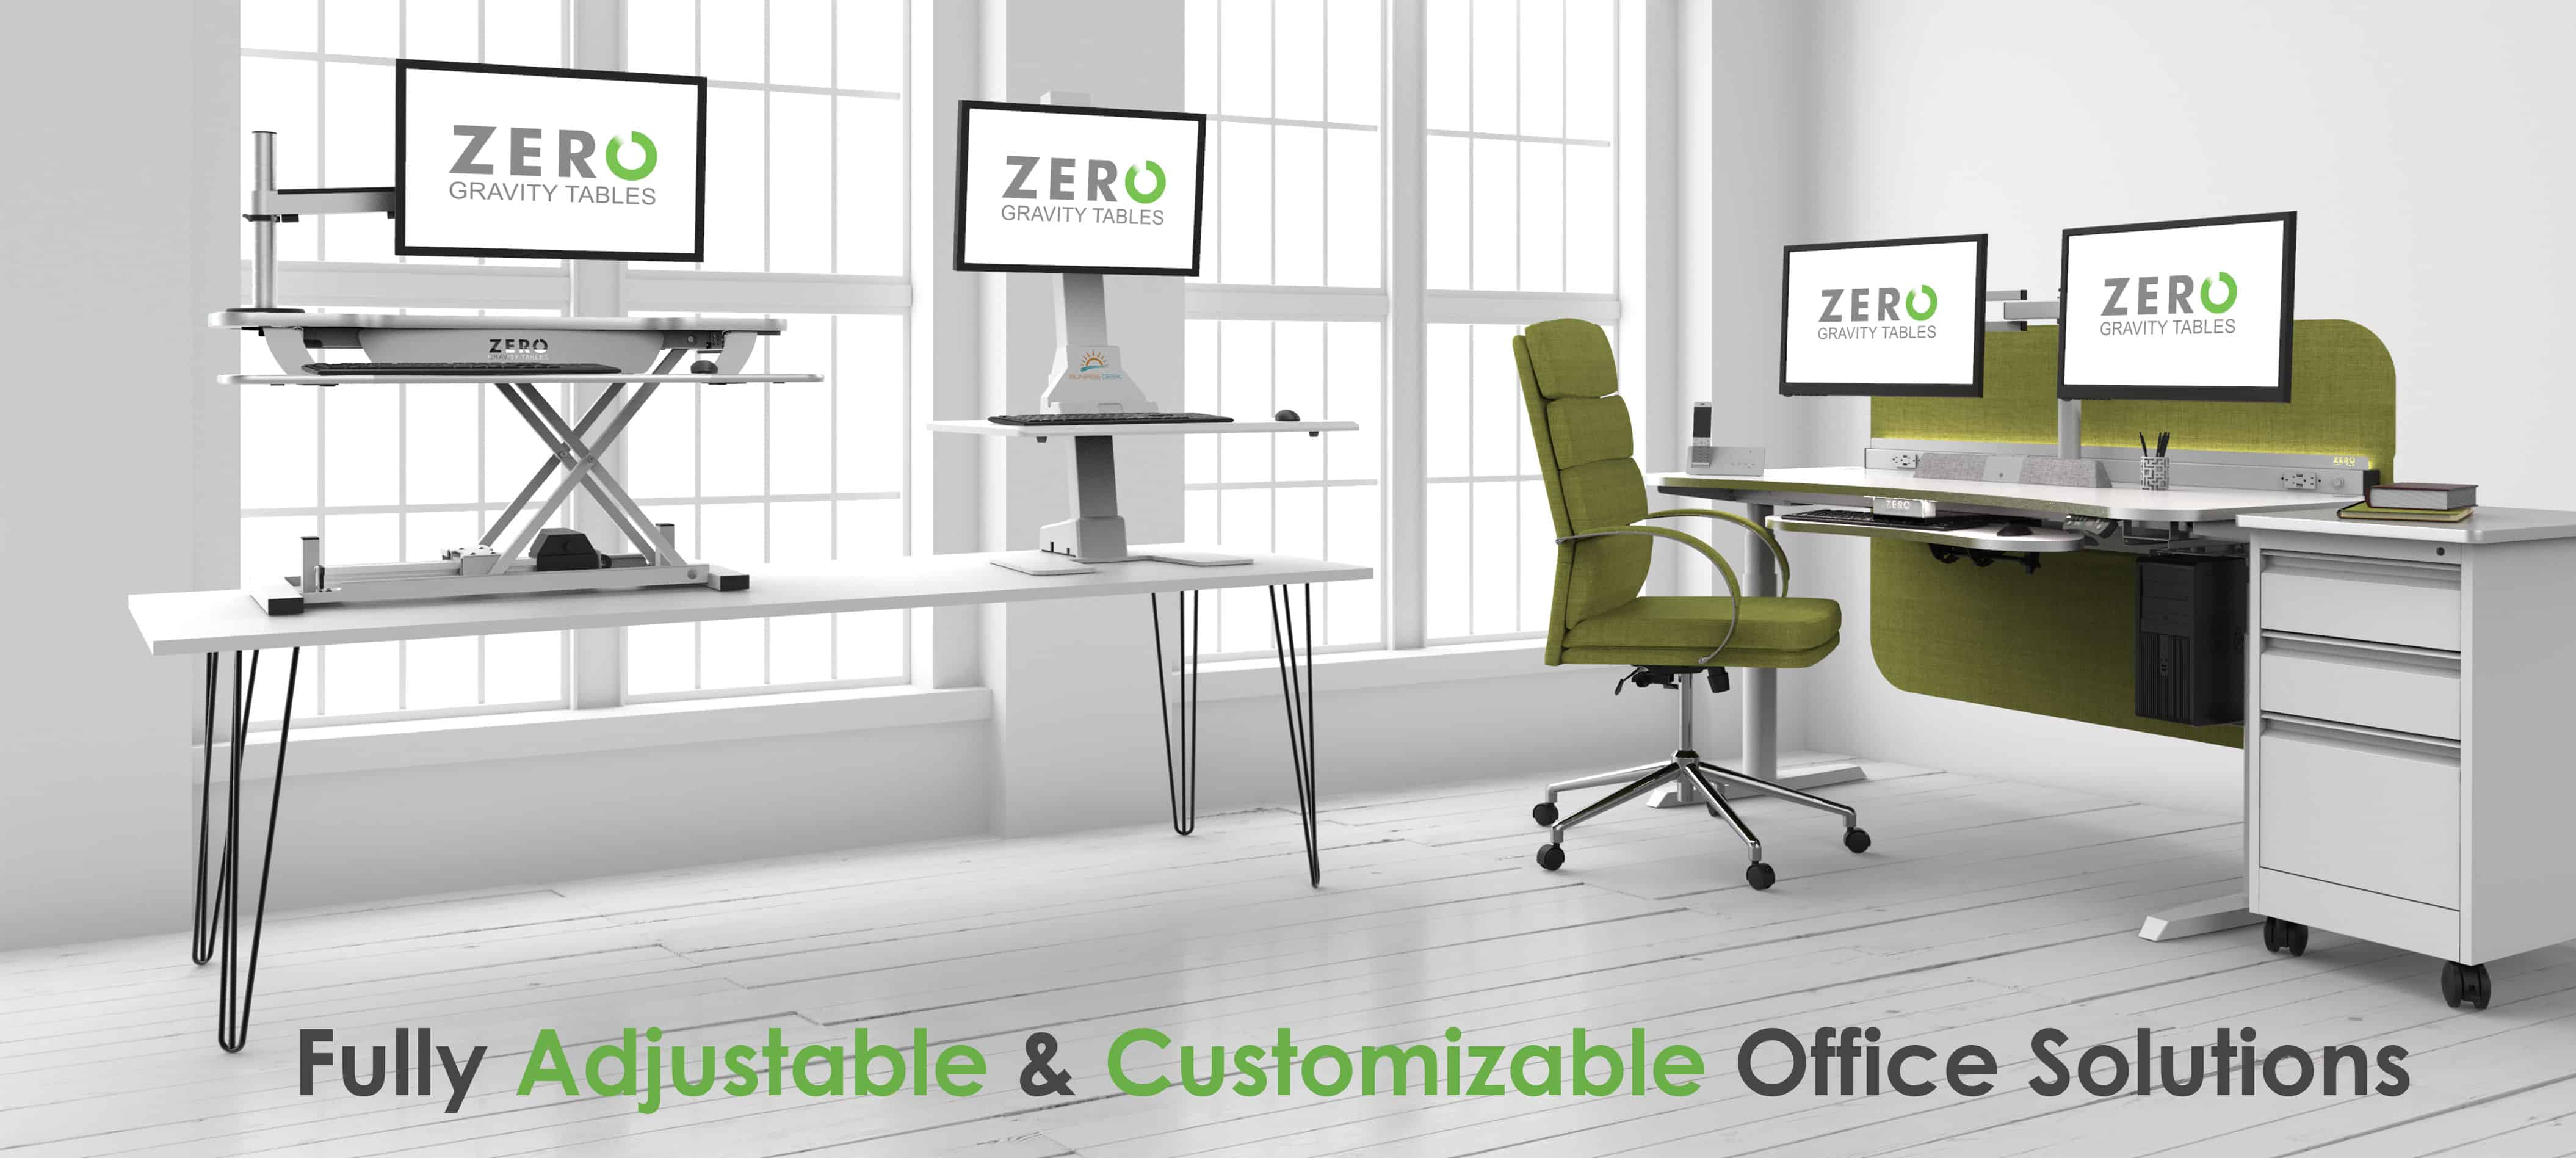 No Partitions Between Desks May Be Healthier For Office